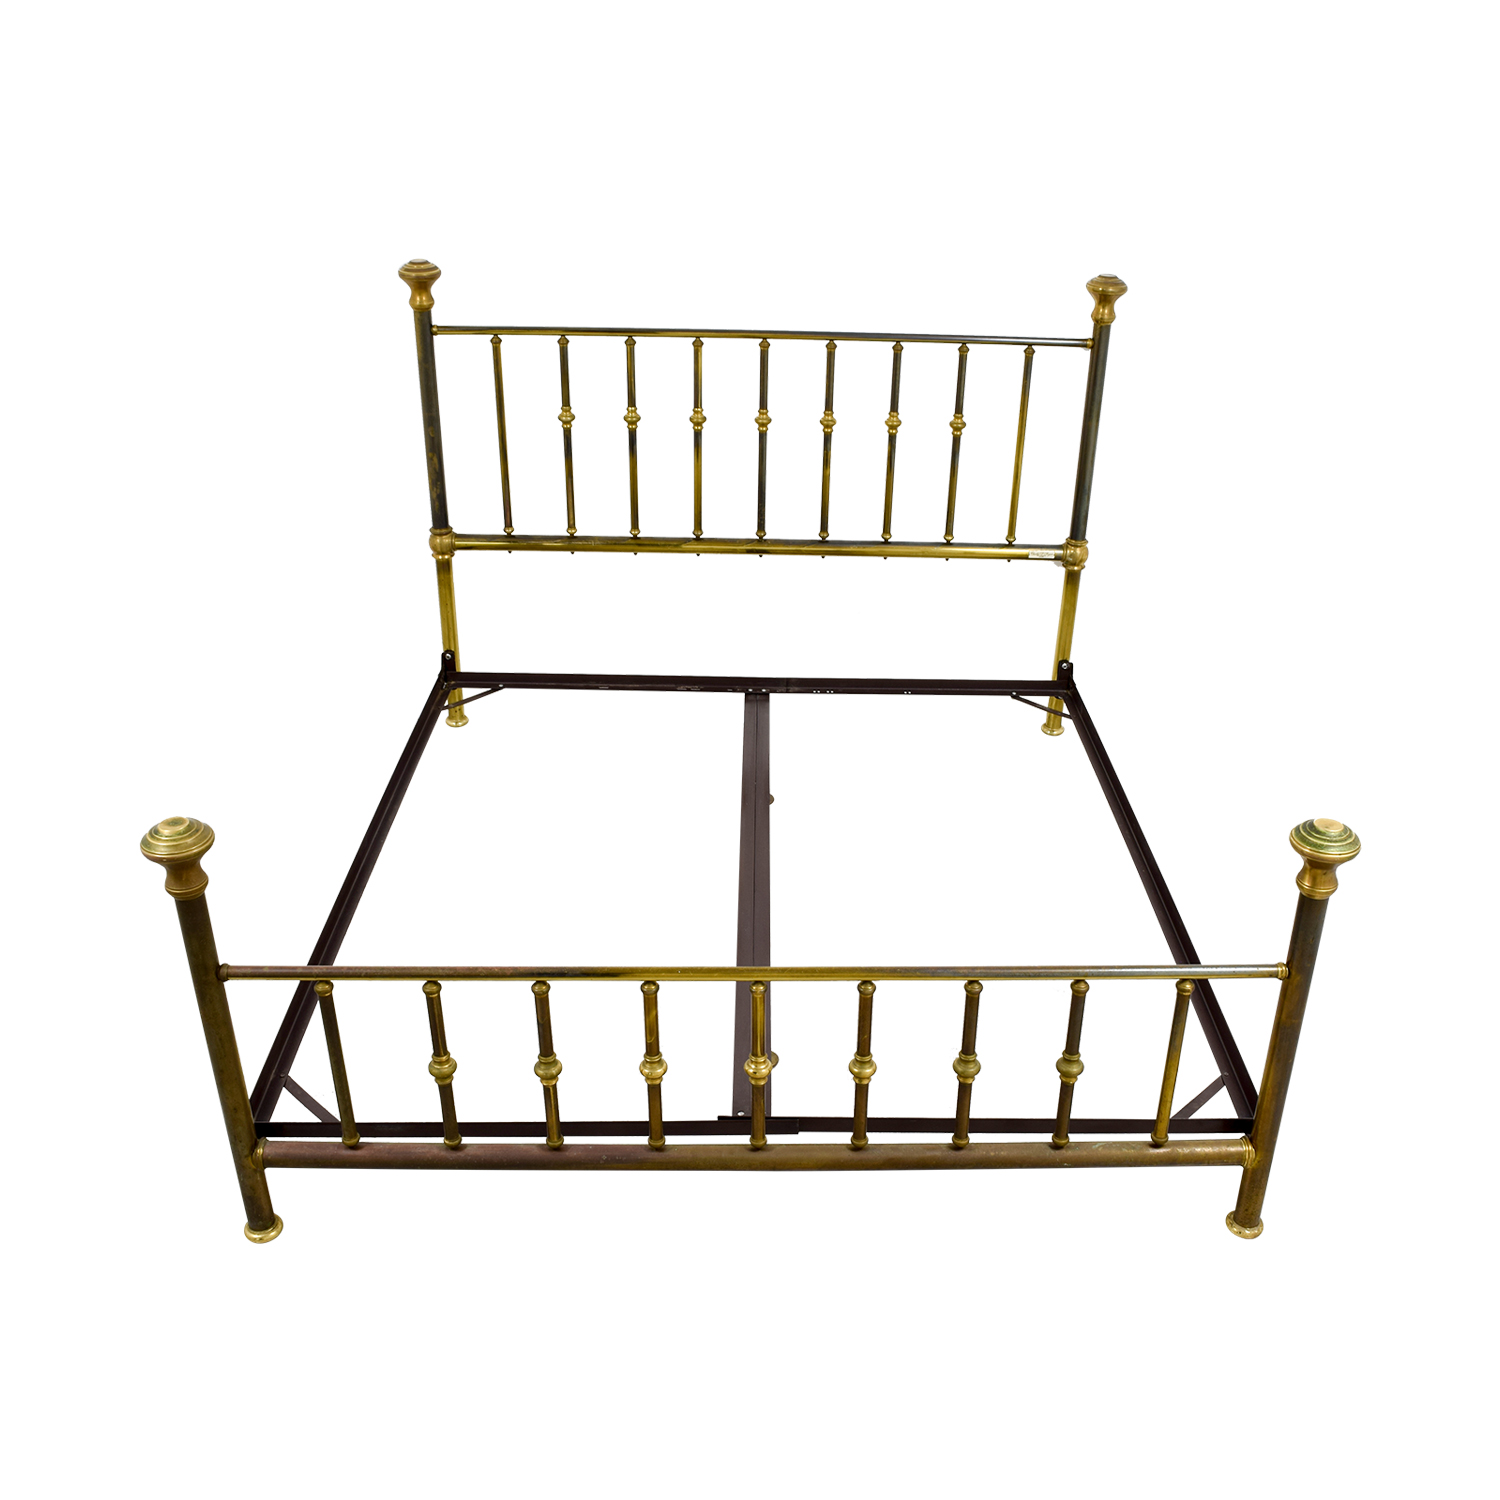 buy Charles P. Rodgers Putnam King Brass Bed Frame Charles P. Rodgers Bed Frames